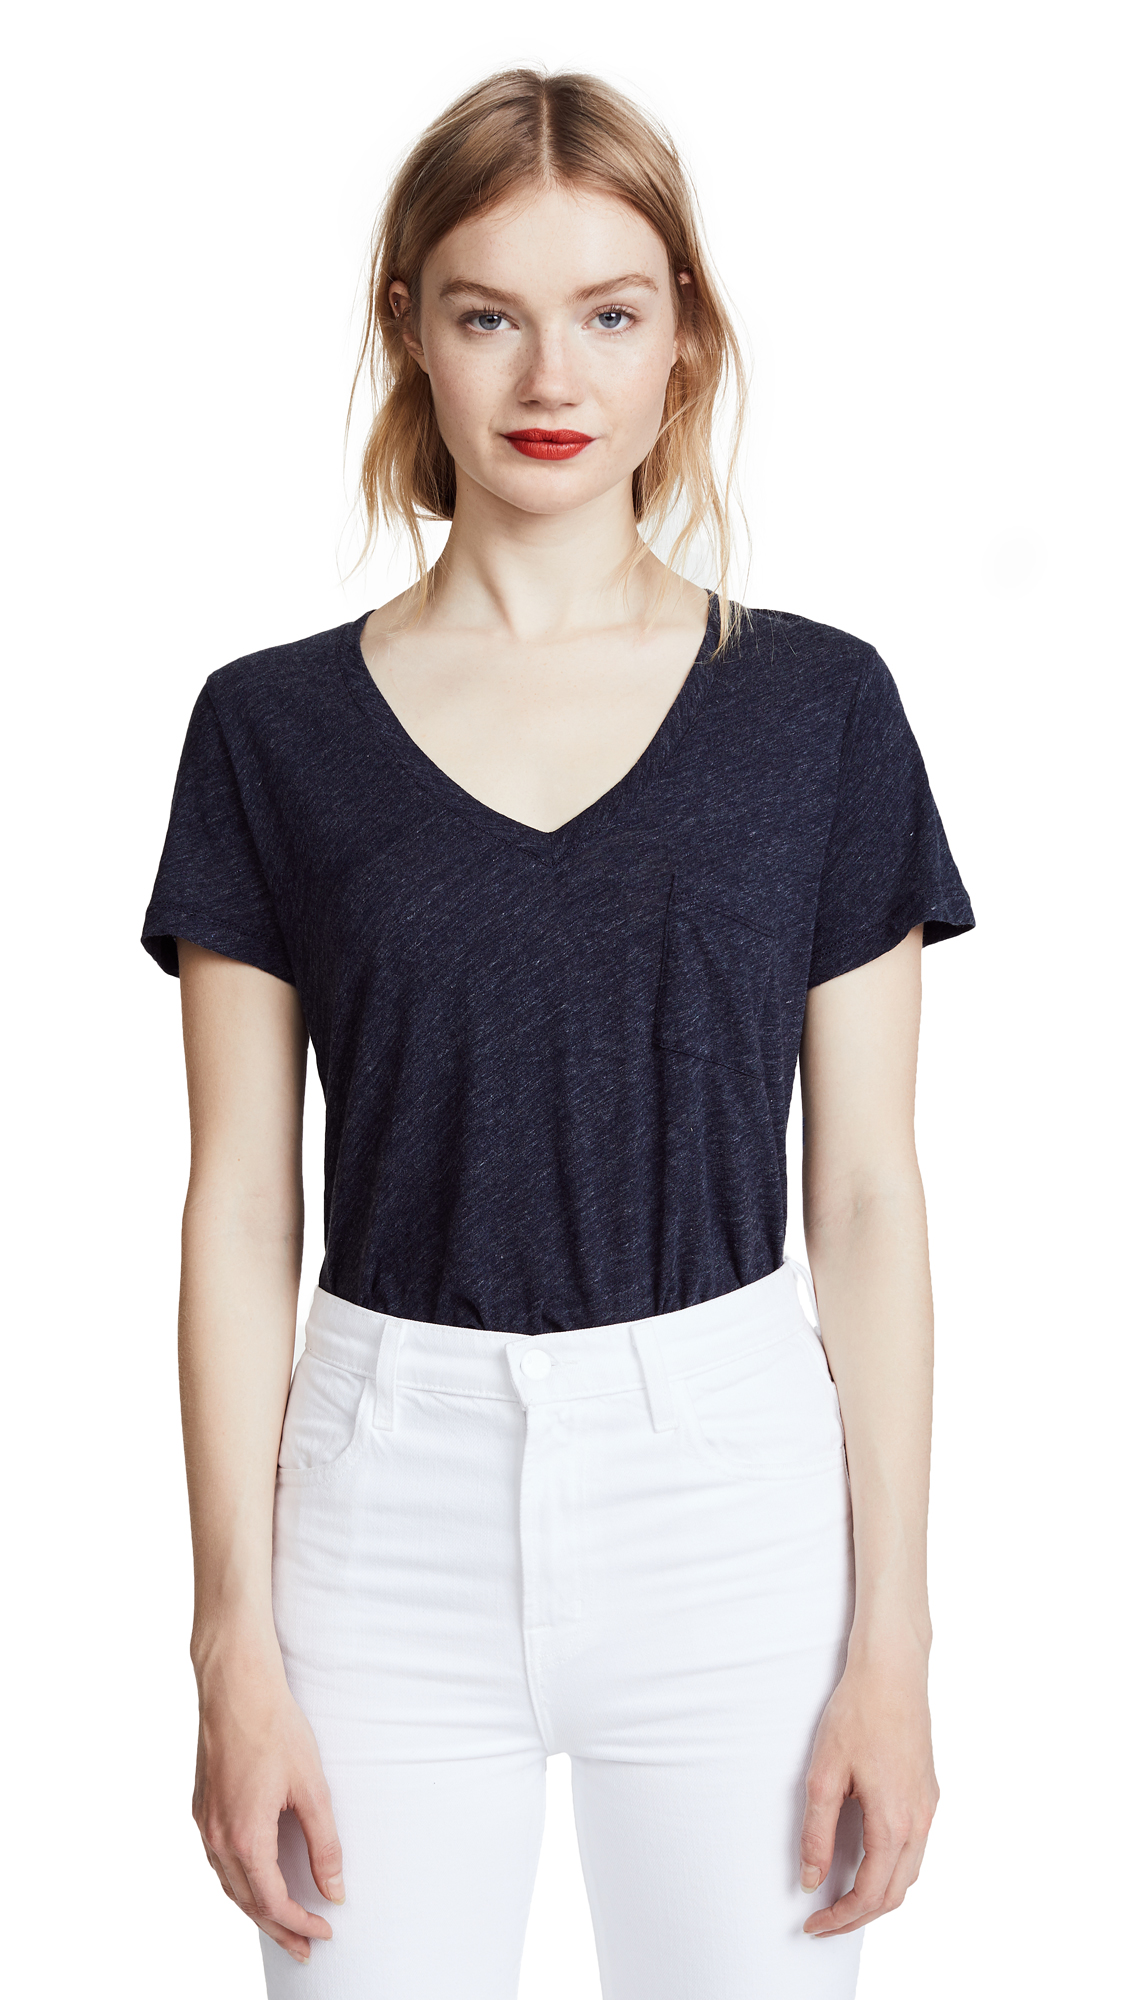 Madewell Whisper Cotton V Neck Pocket Tee - Heather Indigo